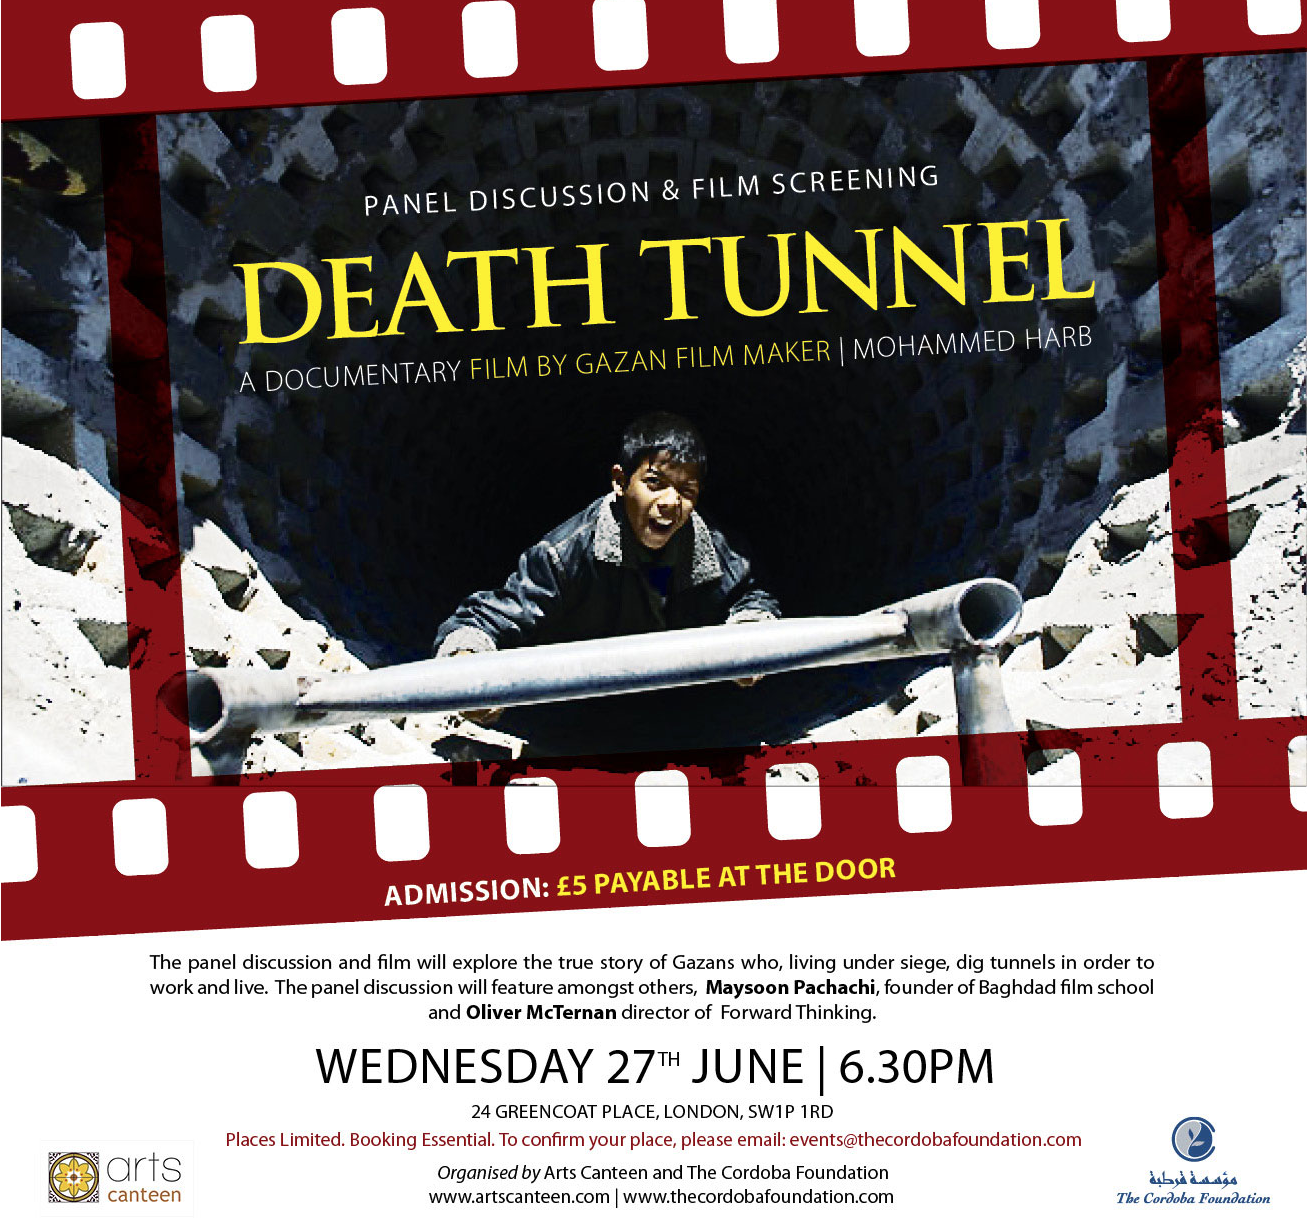 Film Screening and Panel Discussion: DEATH TUNNEL